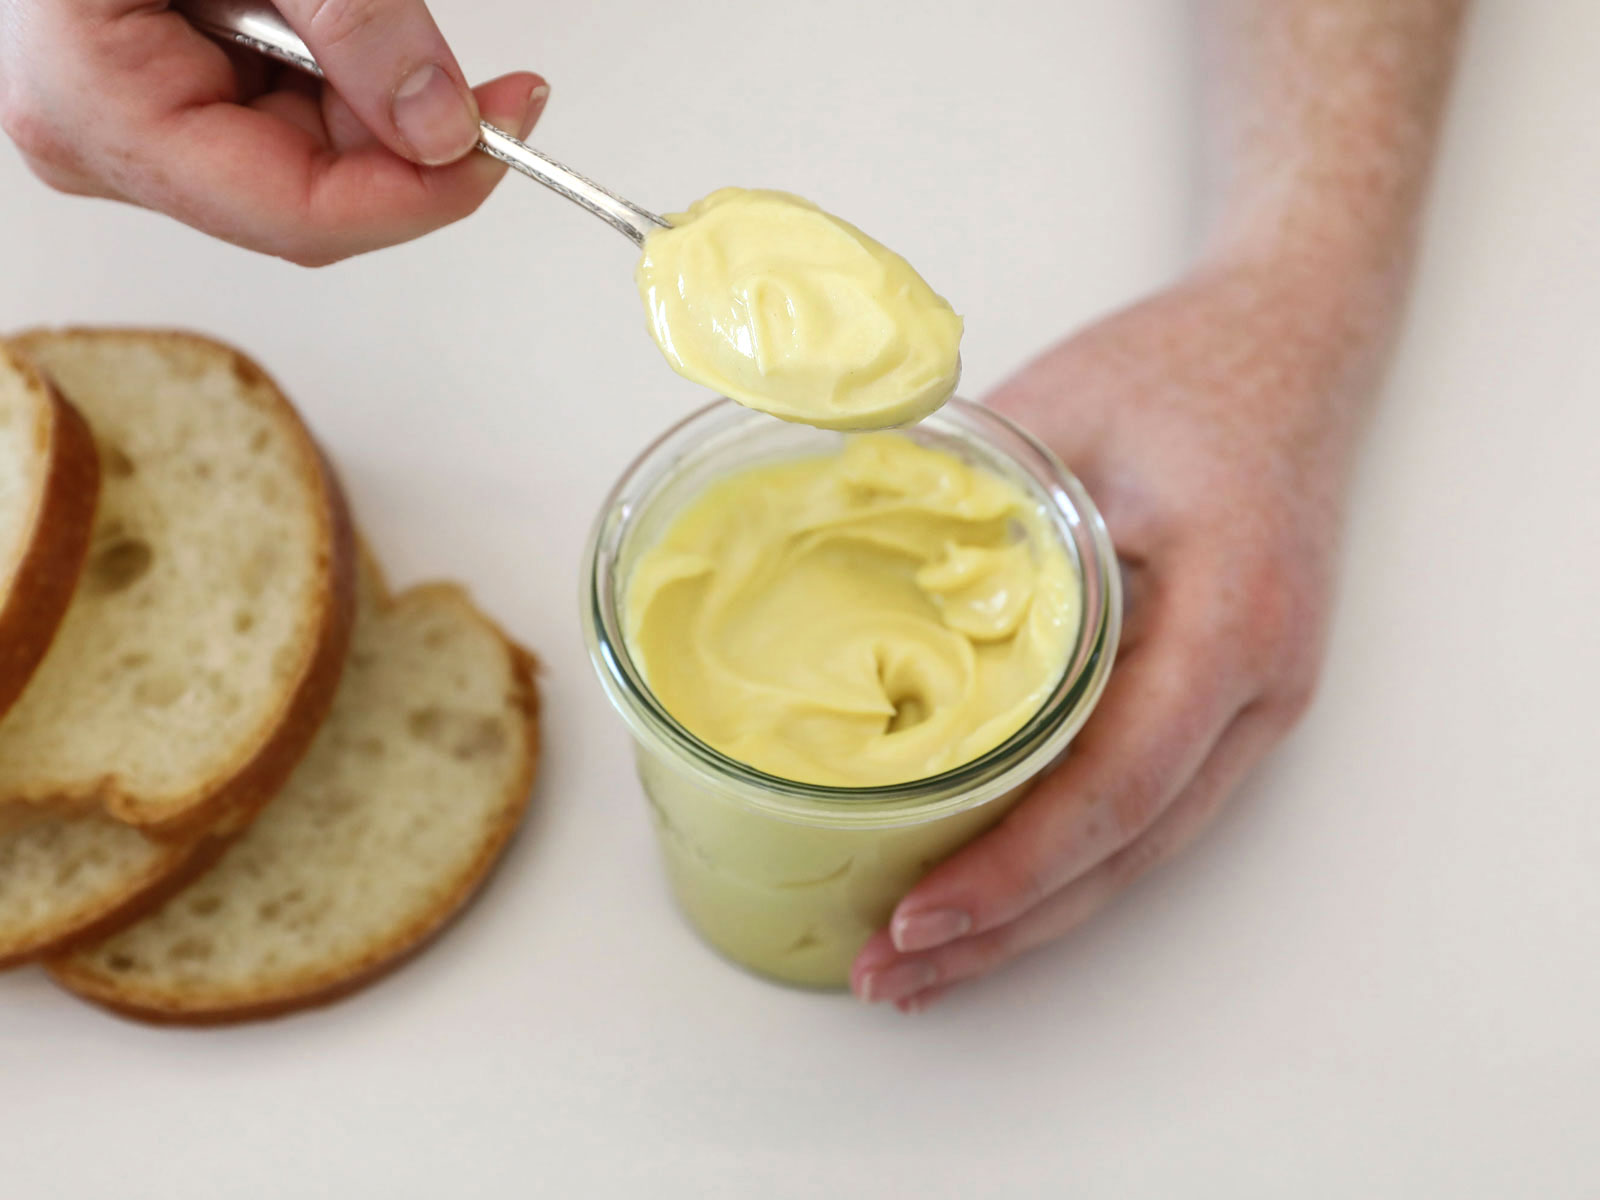 The Foolproof Trick to Making Mayonnaise at Home